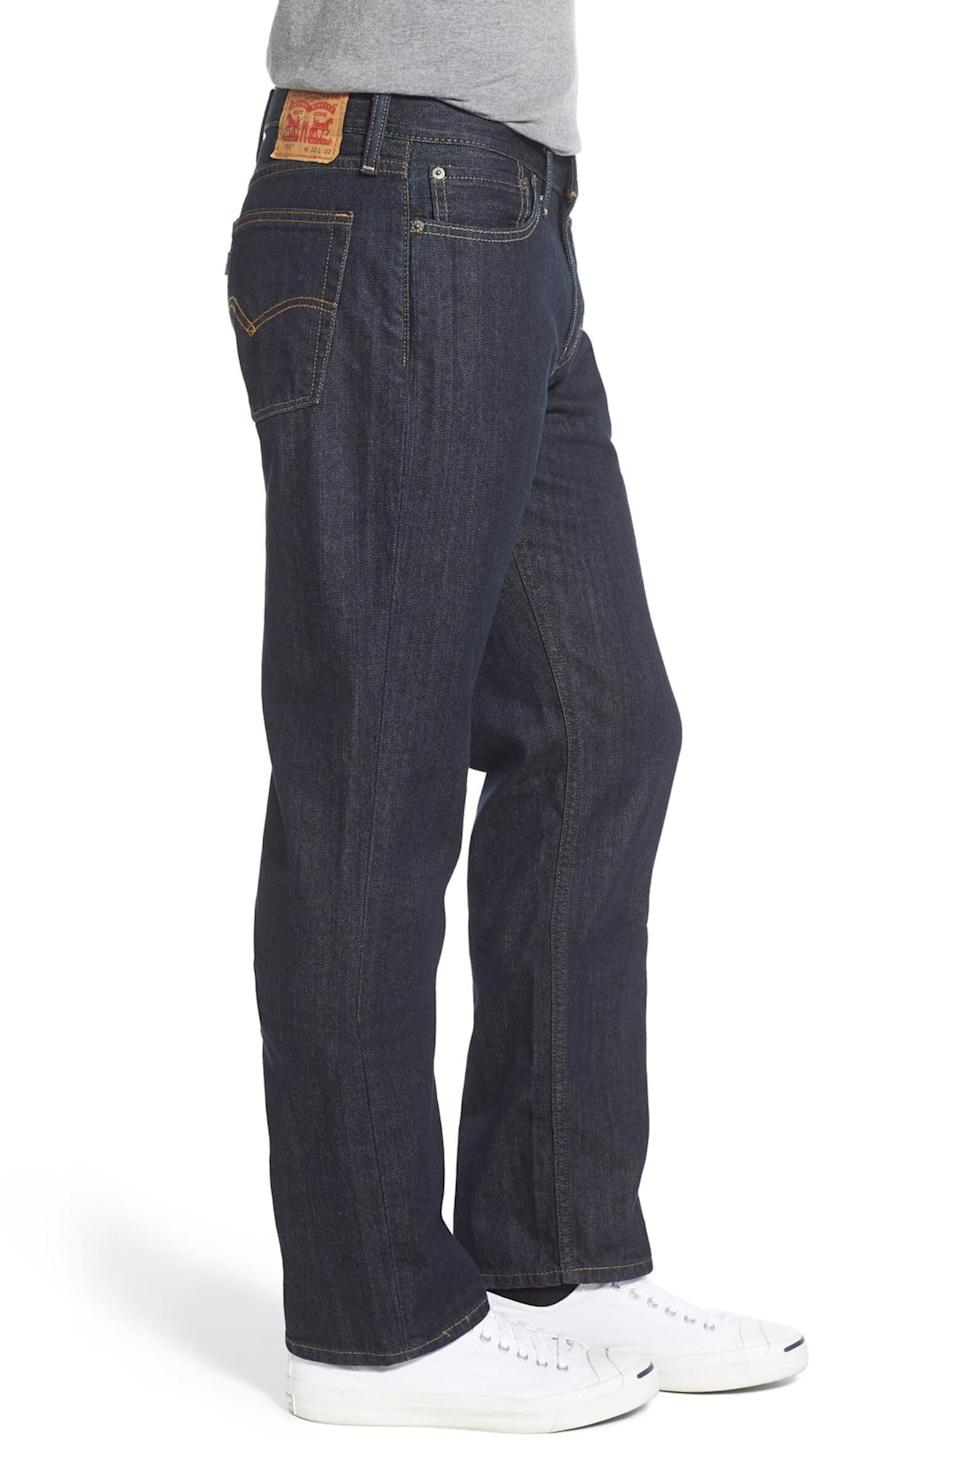 """Levi's jeans are as classic as it gets. <strong><a href=""""https://fave.co/2R2qMbv"""" target=""""_blank"""" rel=""""noopener noreferrer"""">Find this pair at Nordstrom</a></strong>."""